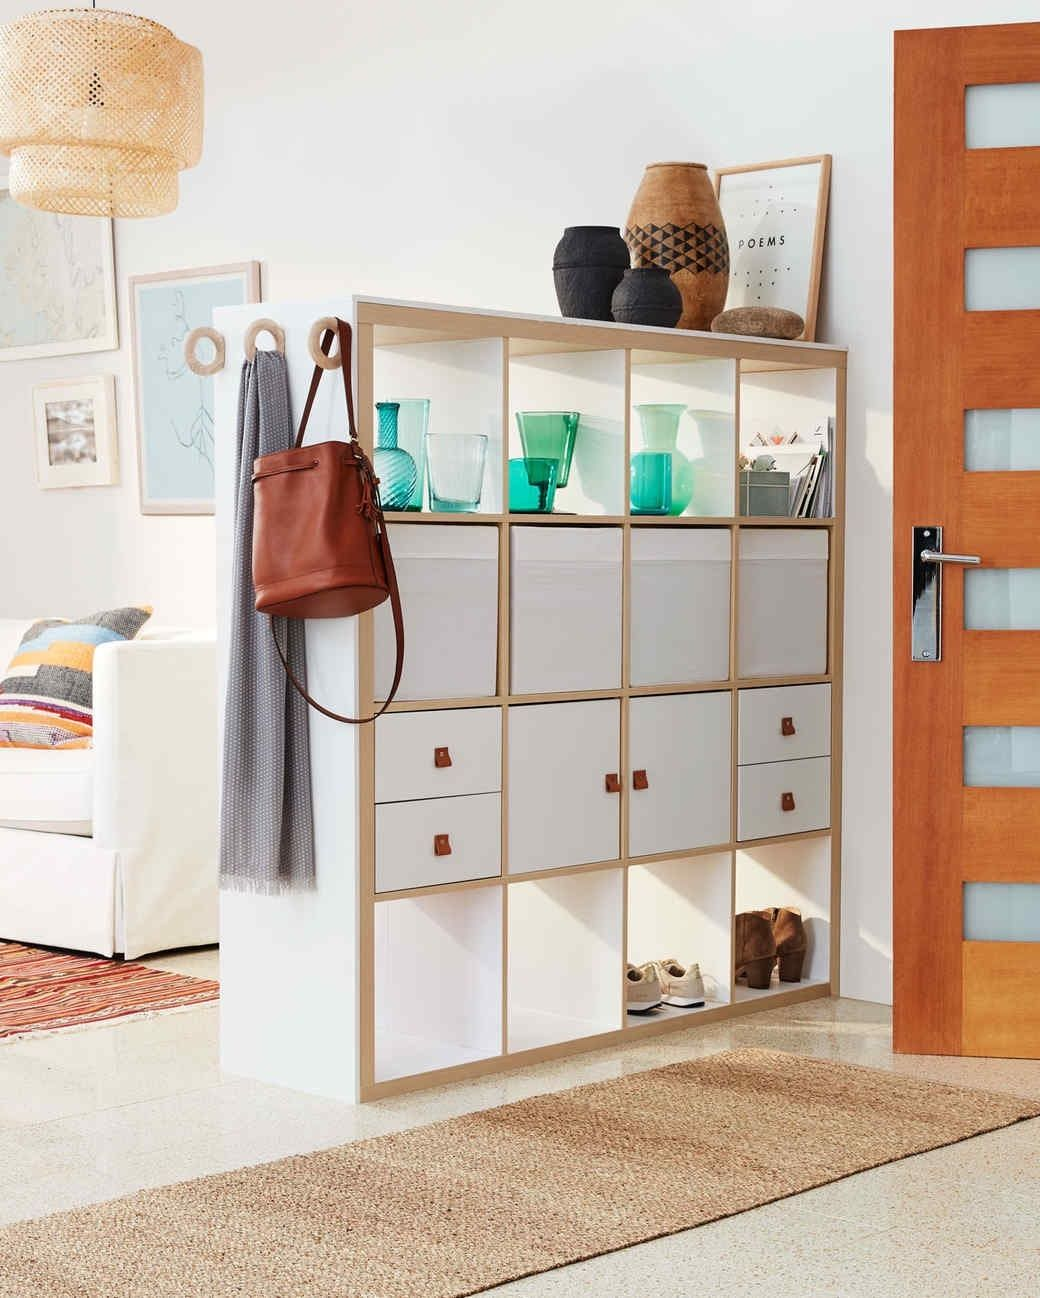 Smart Ways To Use Furniture To Add Storage And Structure To An Open Plan Space Ikea Room Divider Living Room Divider Fabric Room Dividers